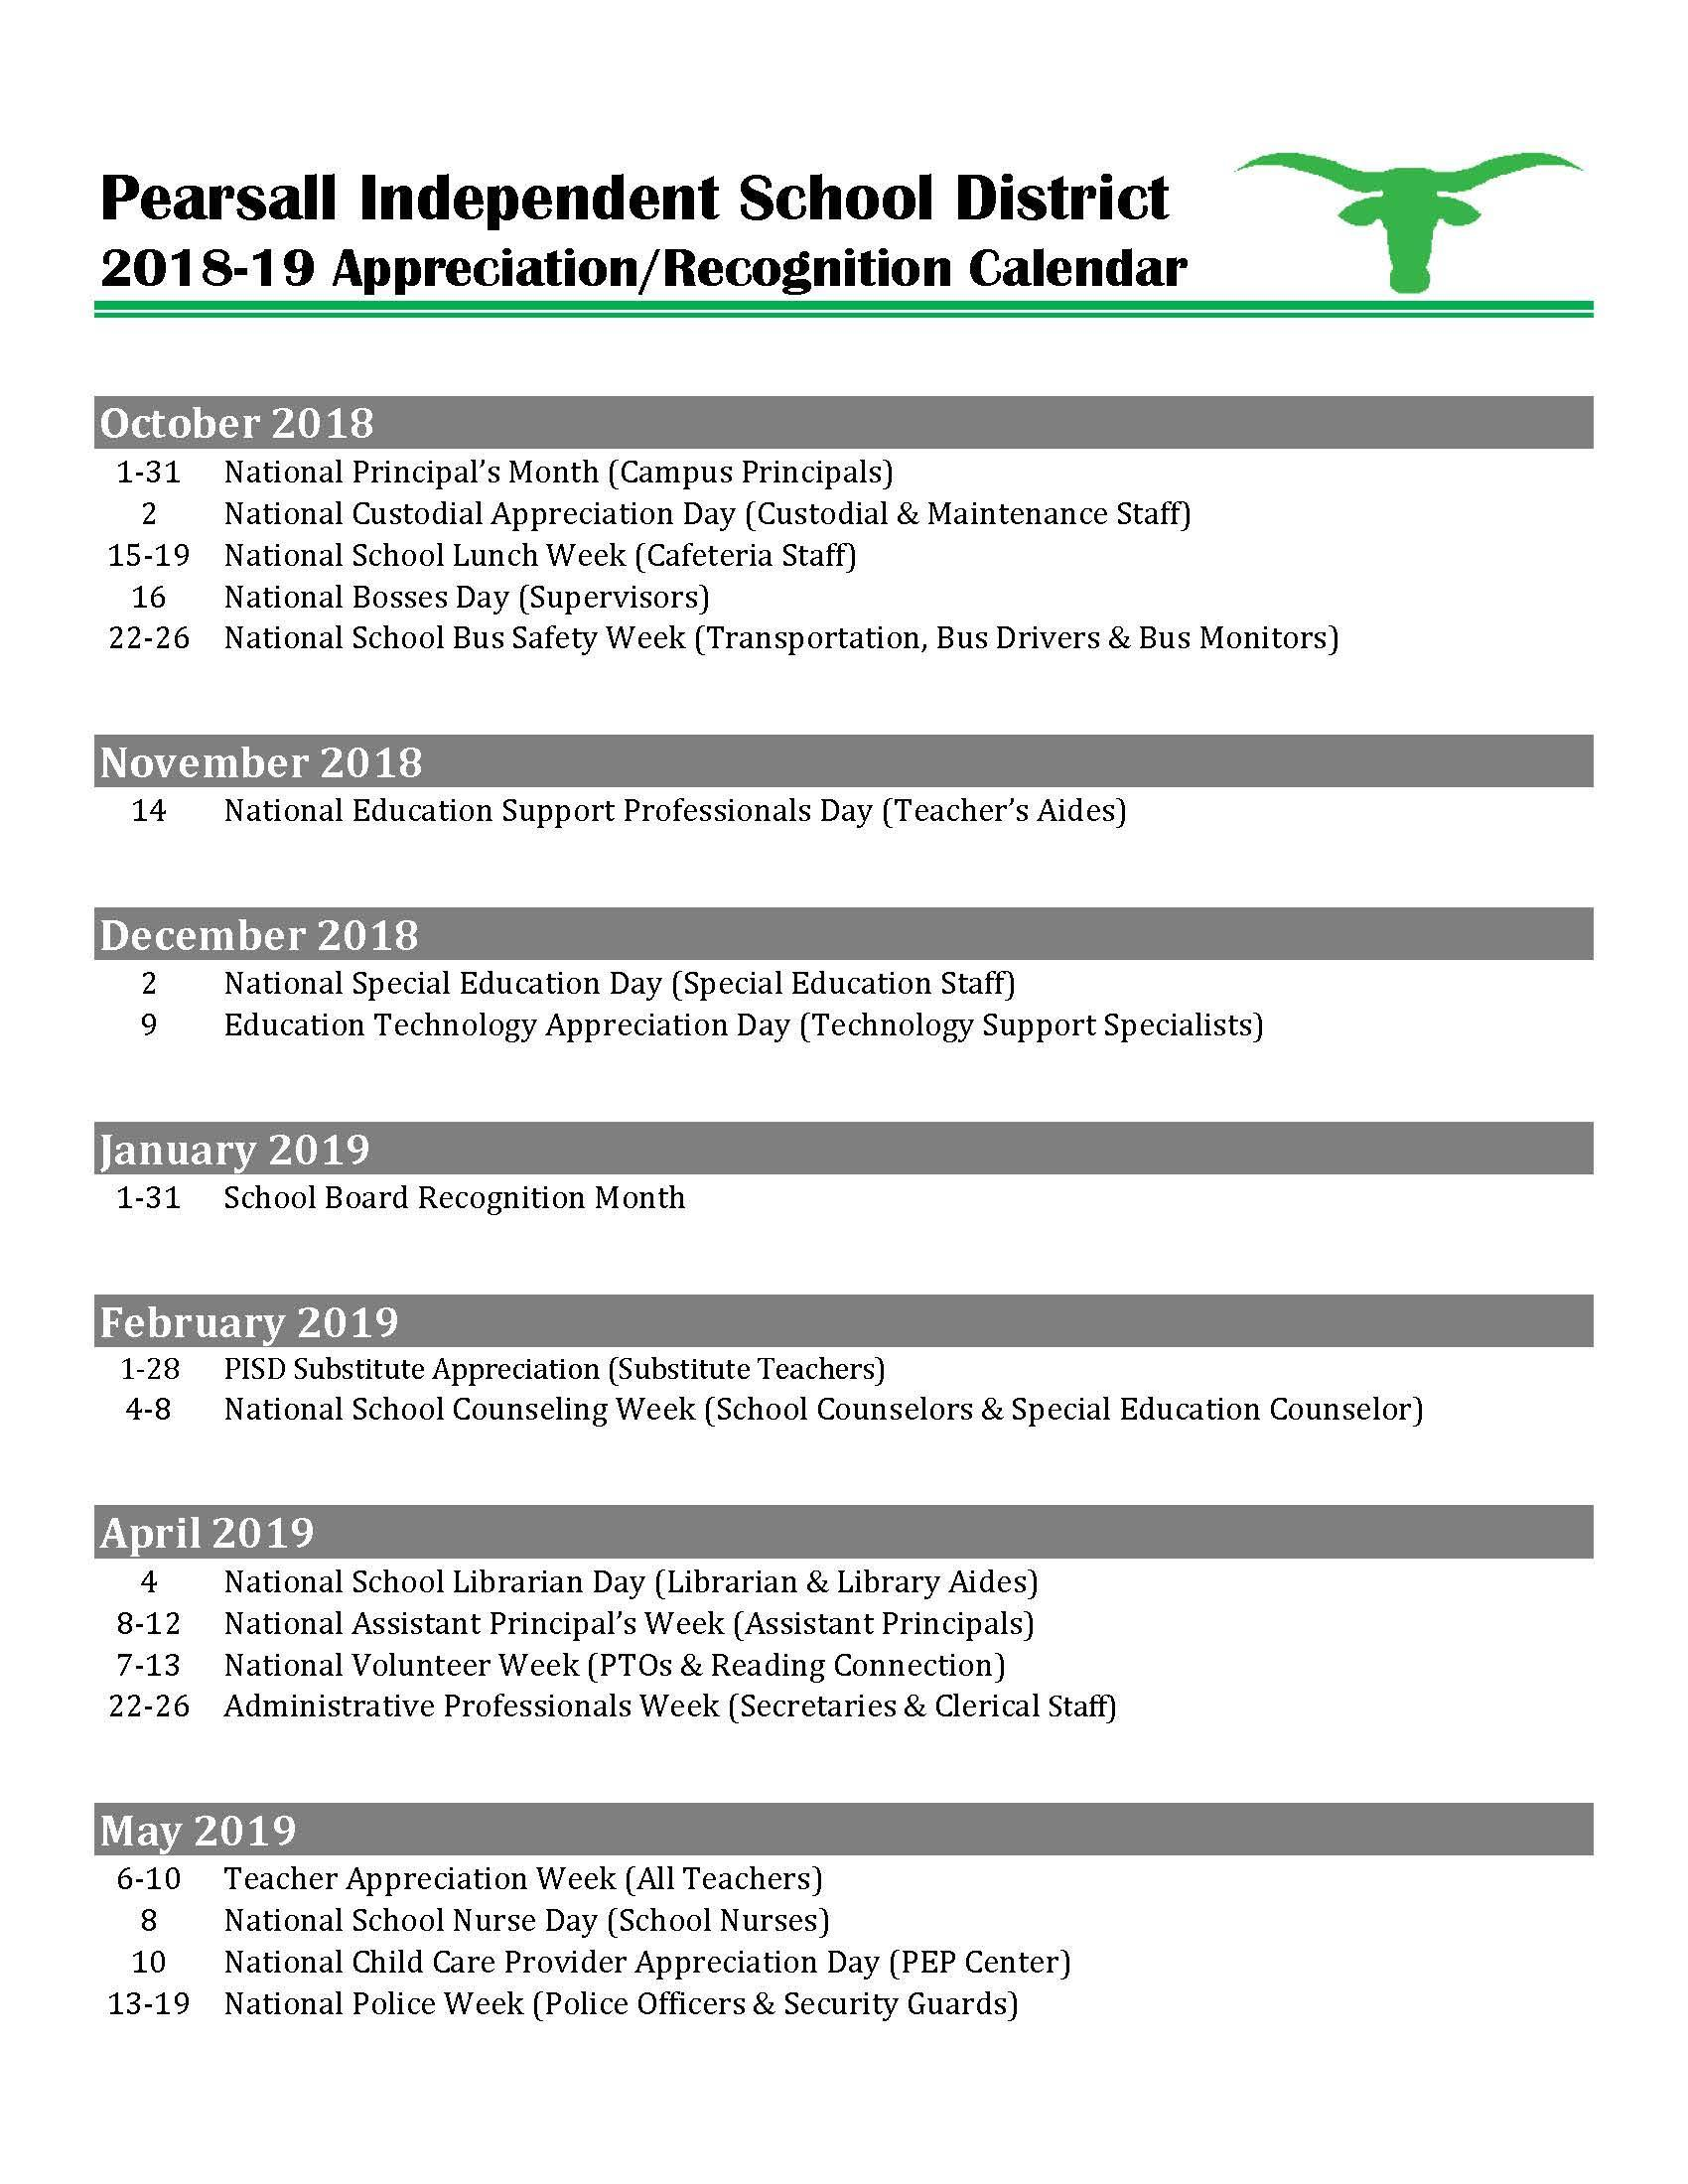 Appreciation Day Calendar 2019 Employee Appreciation/Recognition Calendar – Human Resources